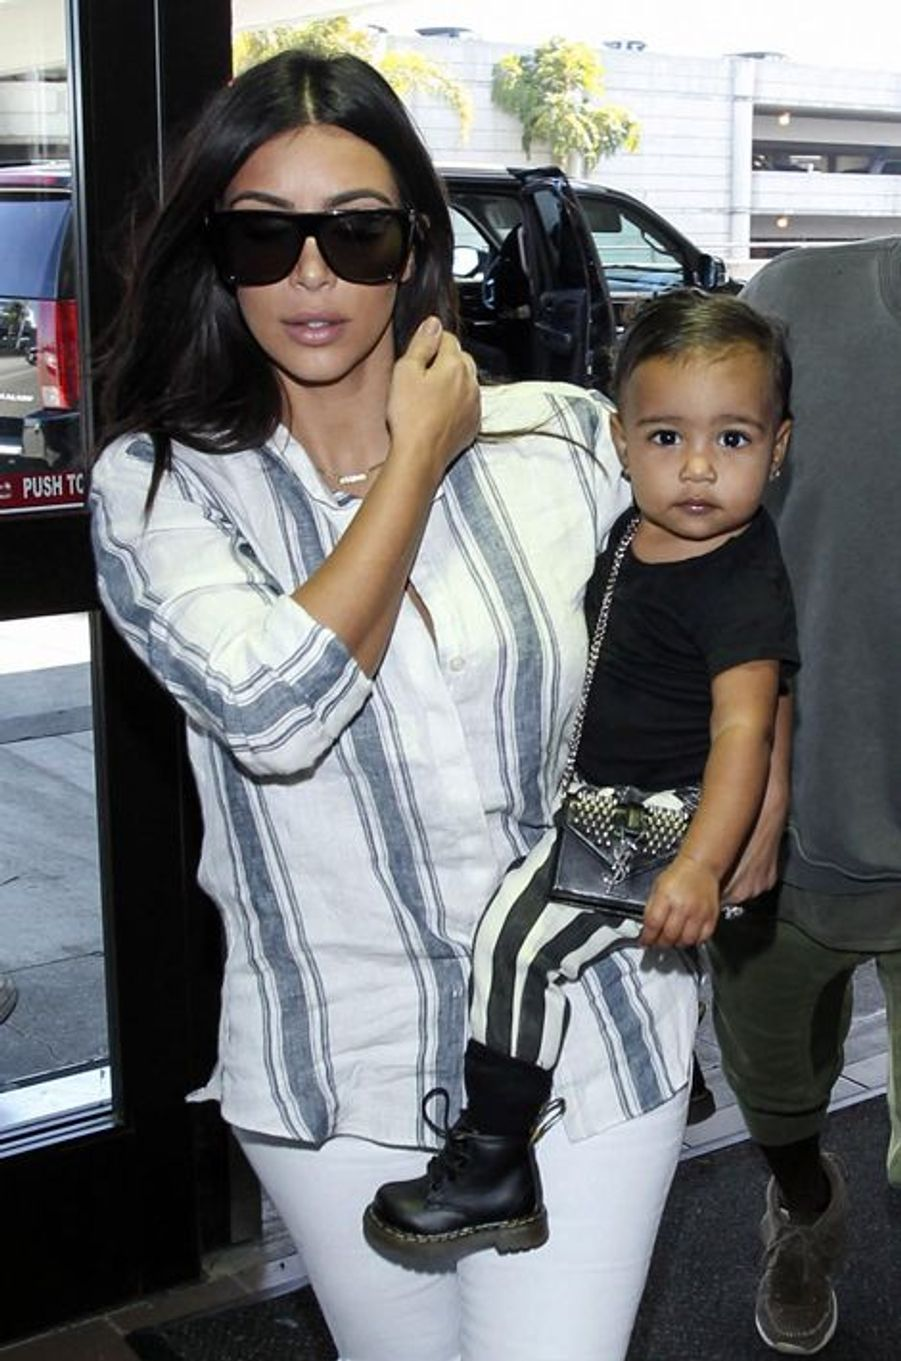 North, fille de Kim Kardashian et Kanye West